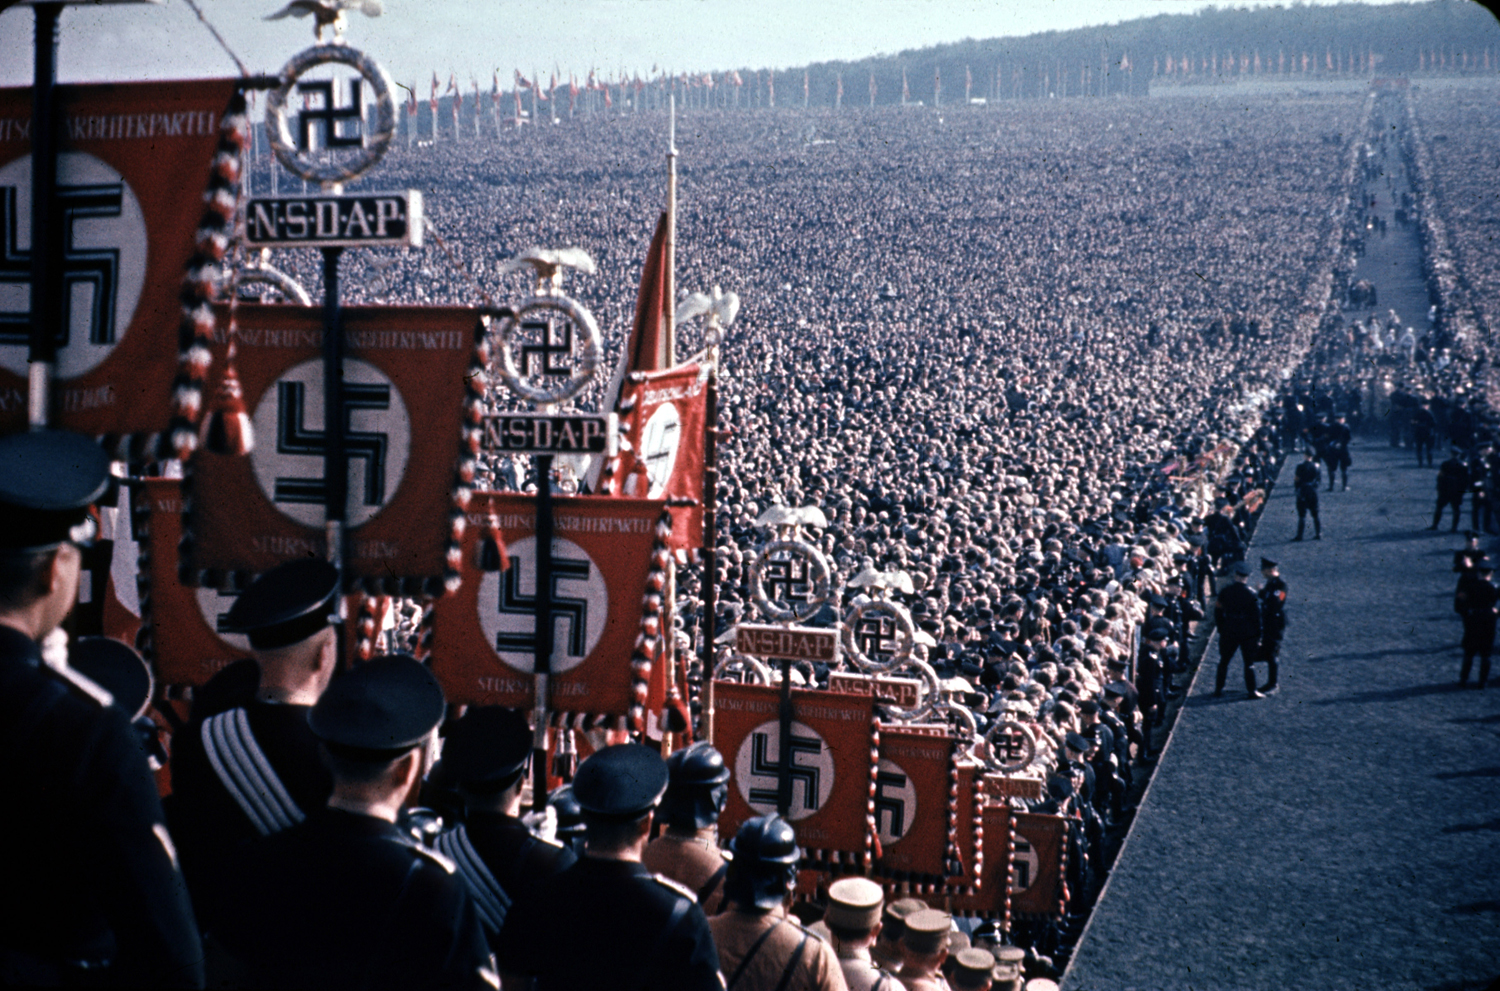 Hundreds of thousands gather at a harvest festival and Nazi Party rally in Germany, 1937.